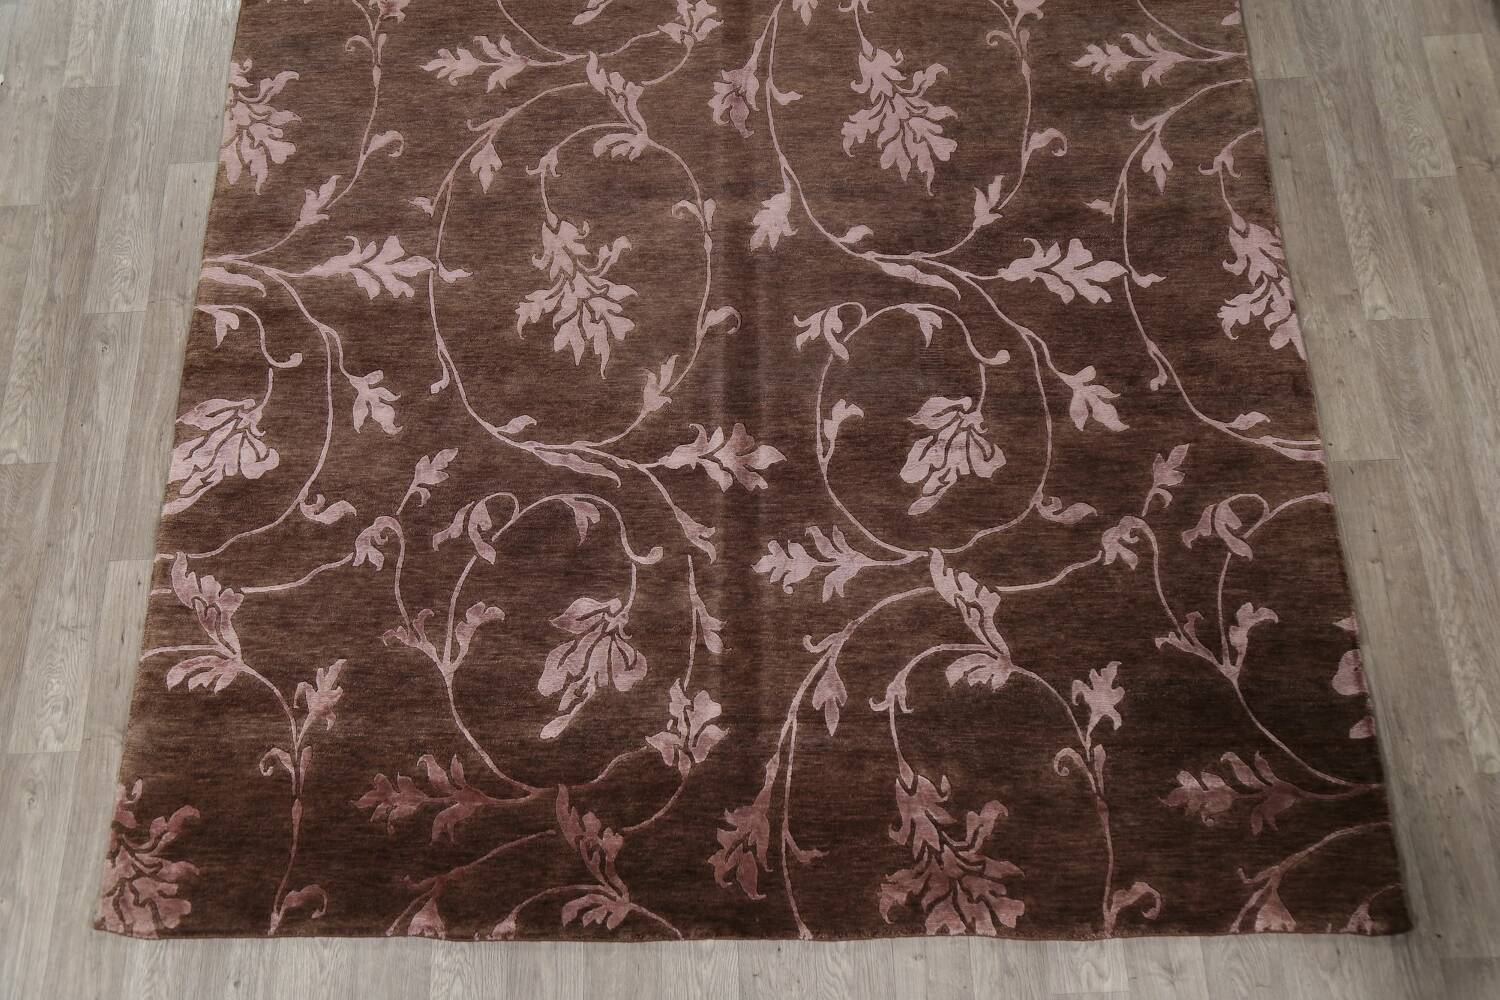 All-Over Floral Brown Art & Craft Oriental Area Rug 8x10 image 8